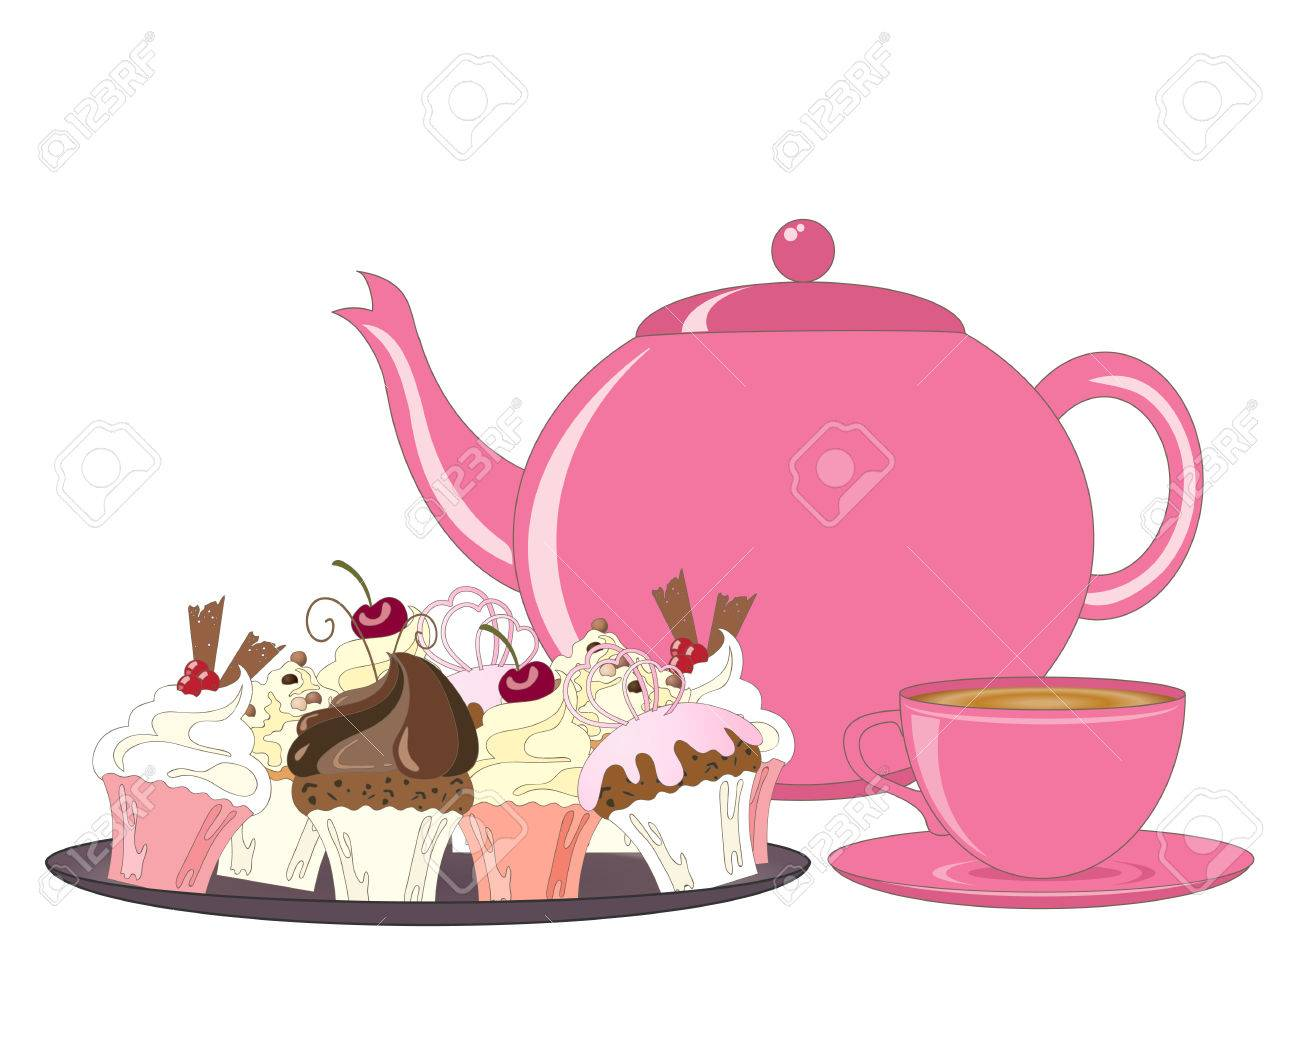 an illustration of a selection of decorated cakes teapot and tea cup for an afternoon tea on a white background - 81570091